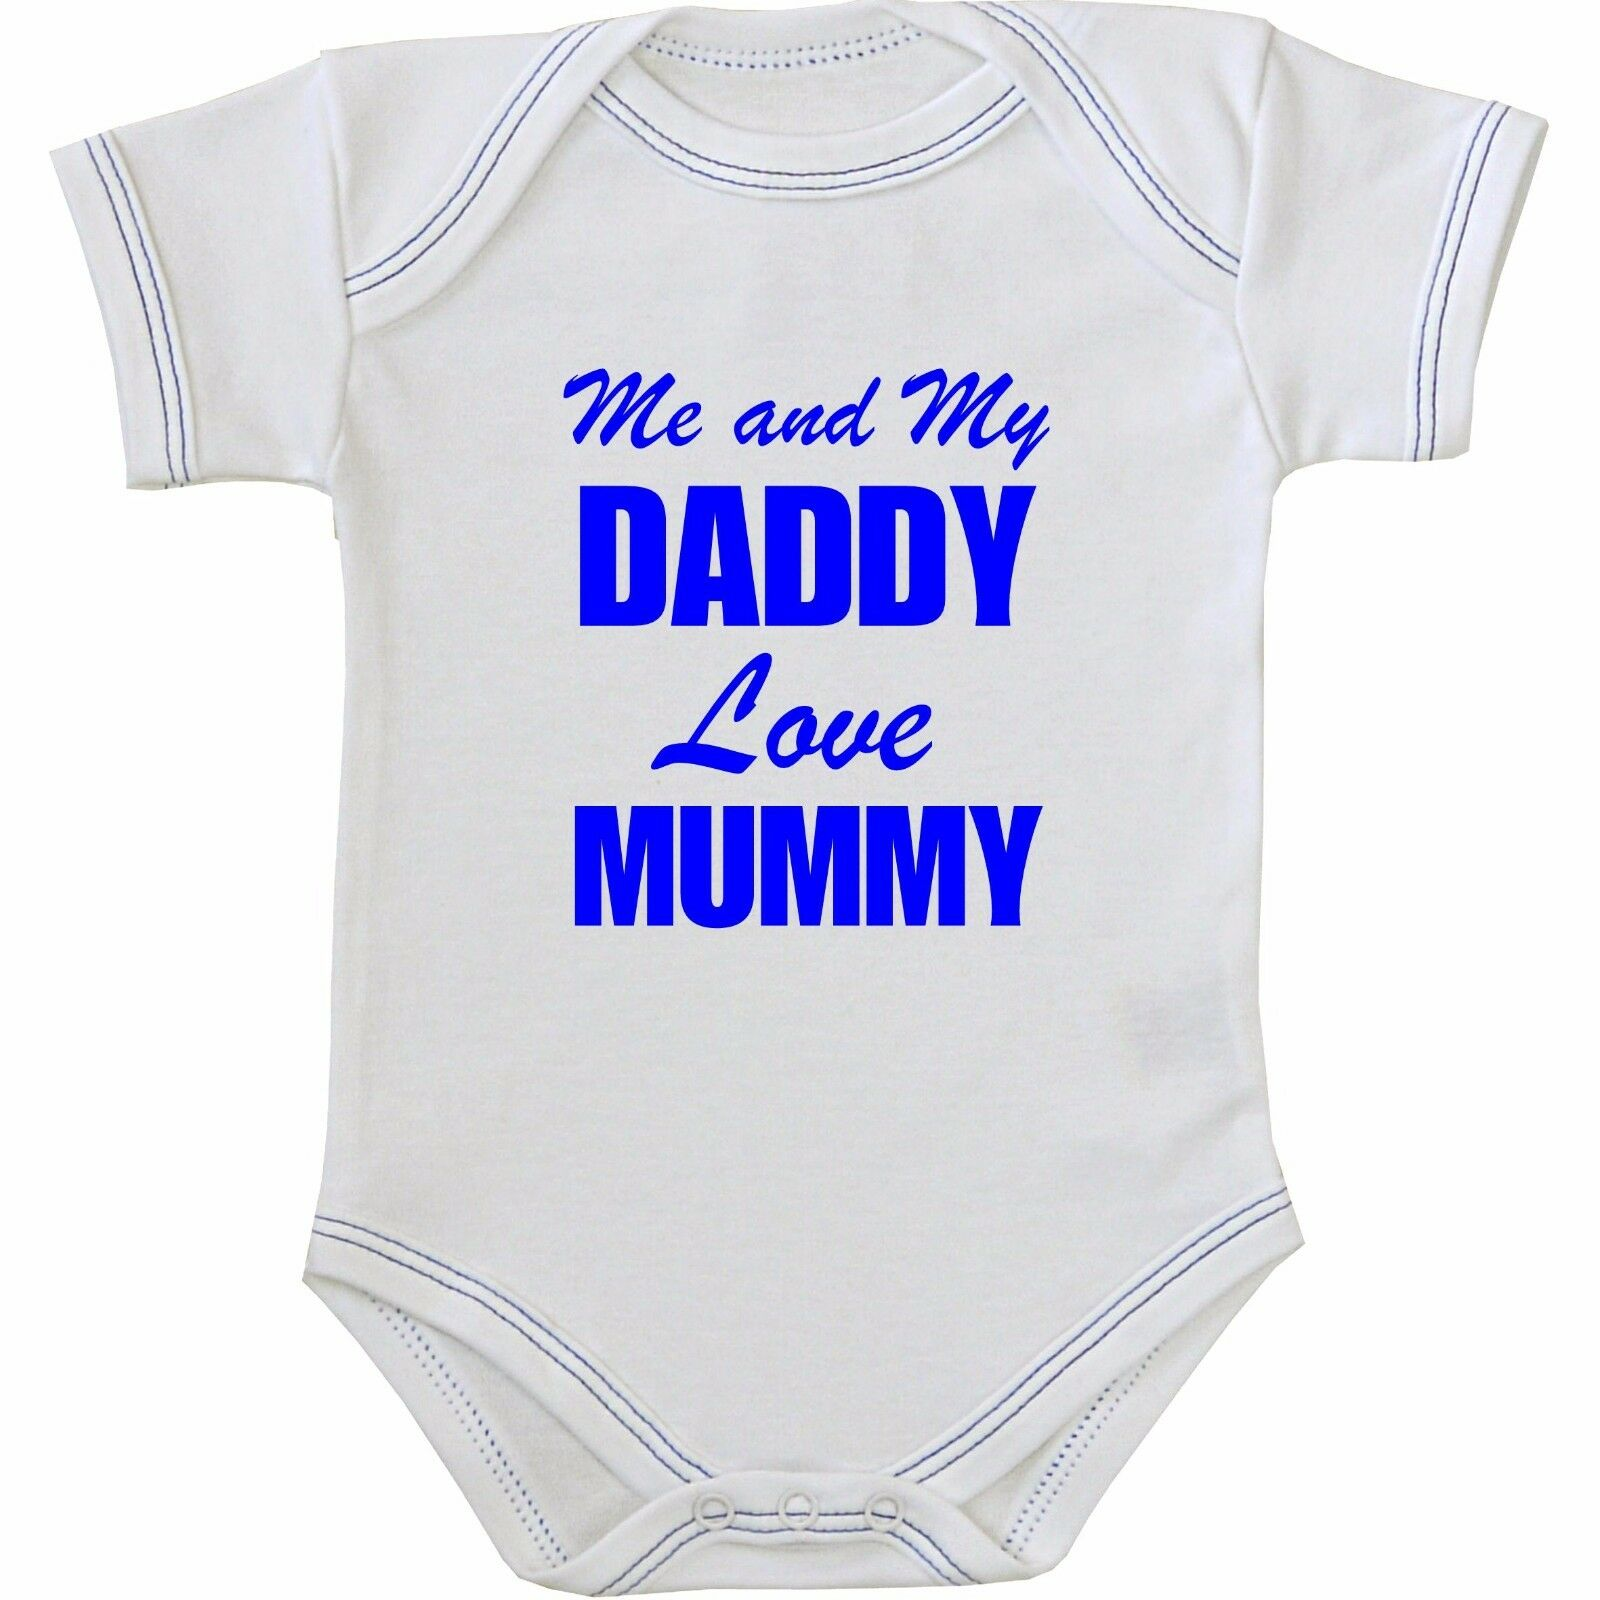 BabyPrem Baby Clothes I Daddy Love Mummy Bodysuits Vests e pieces